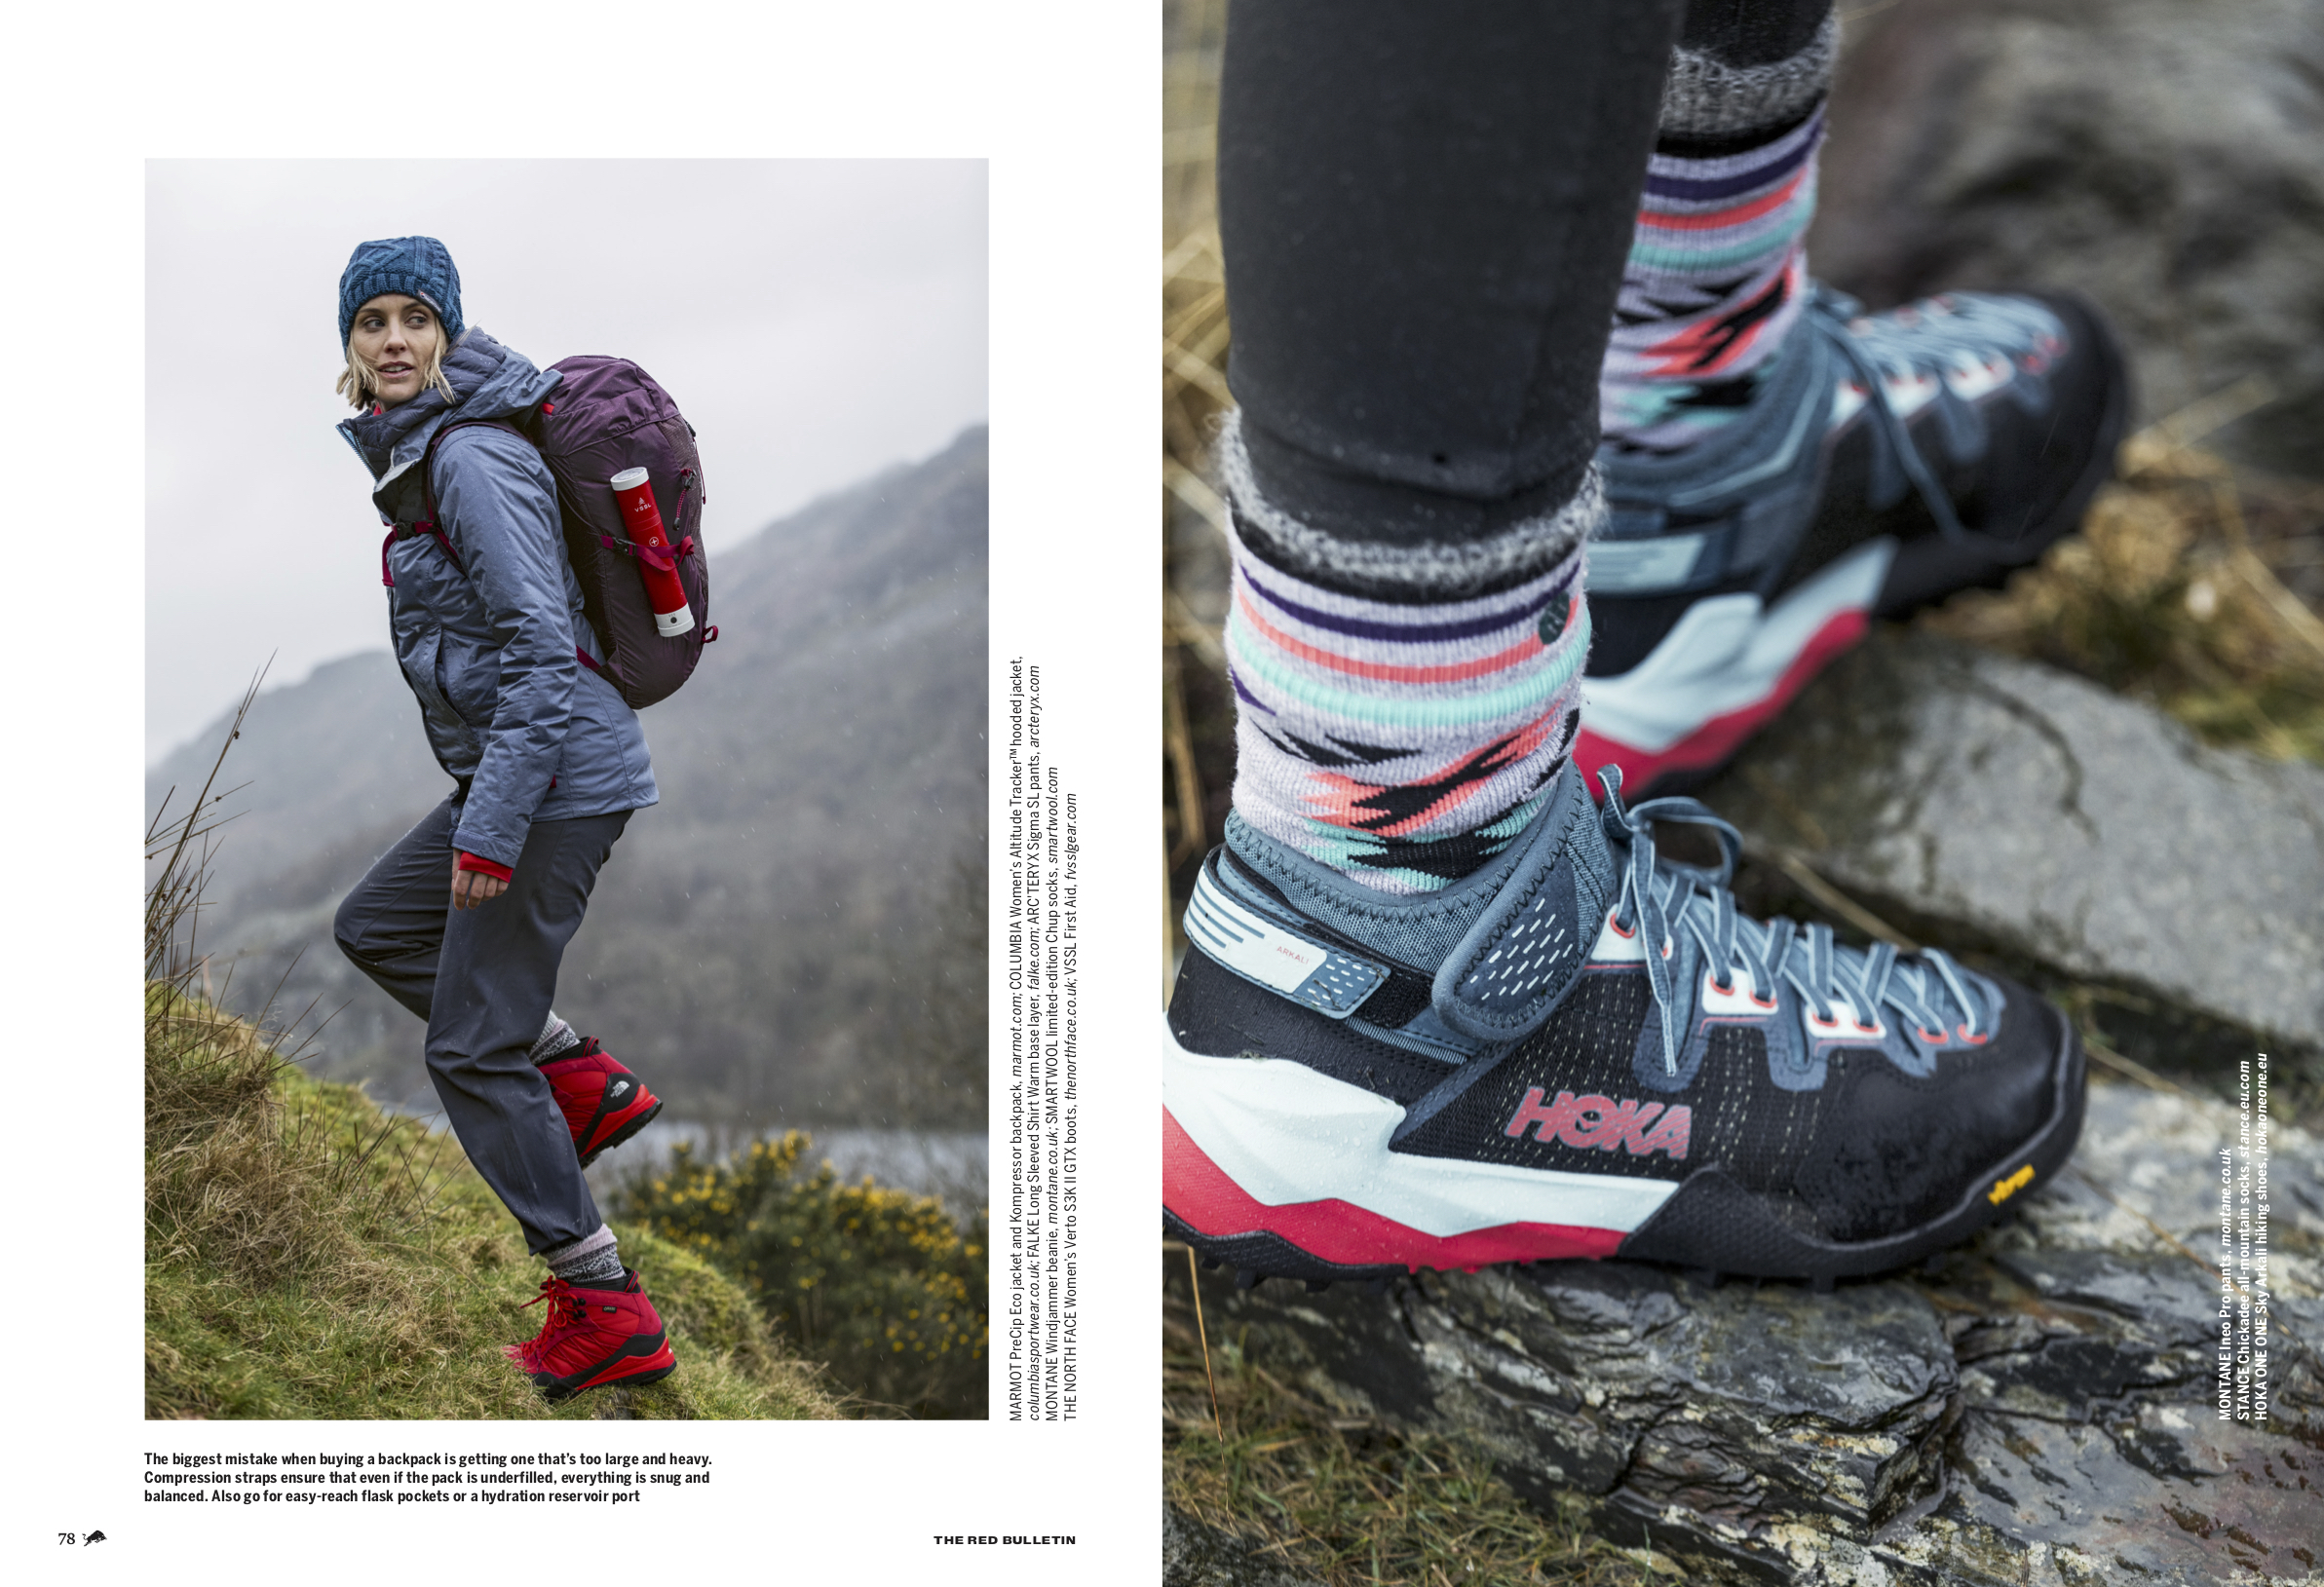 TheRedBulletin0519Feature-UK_OutdoorClothing p80-4.jpg